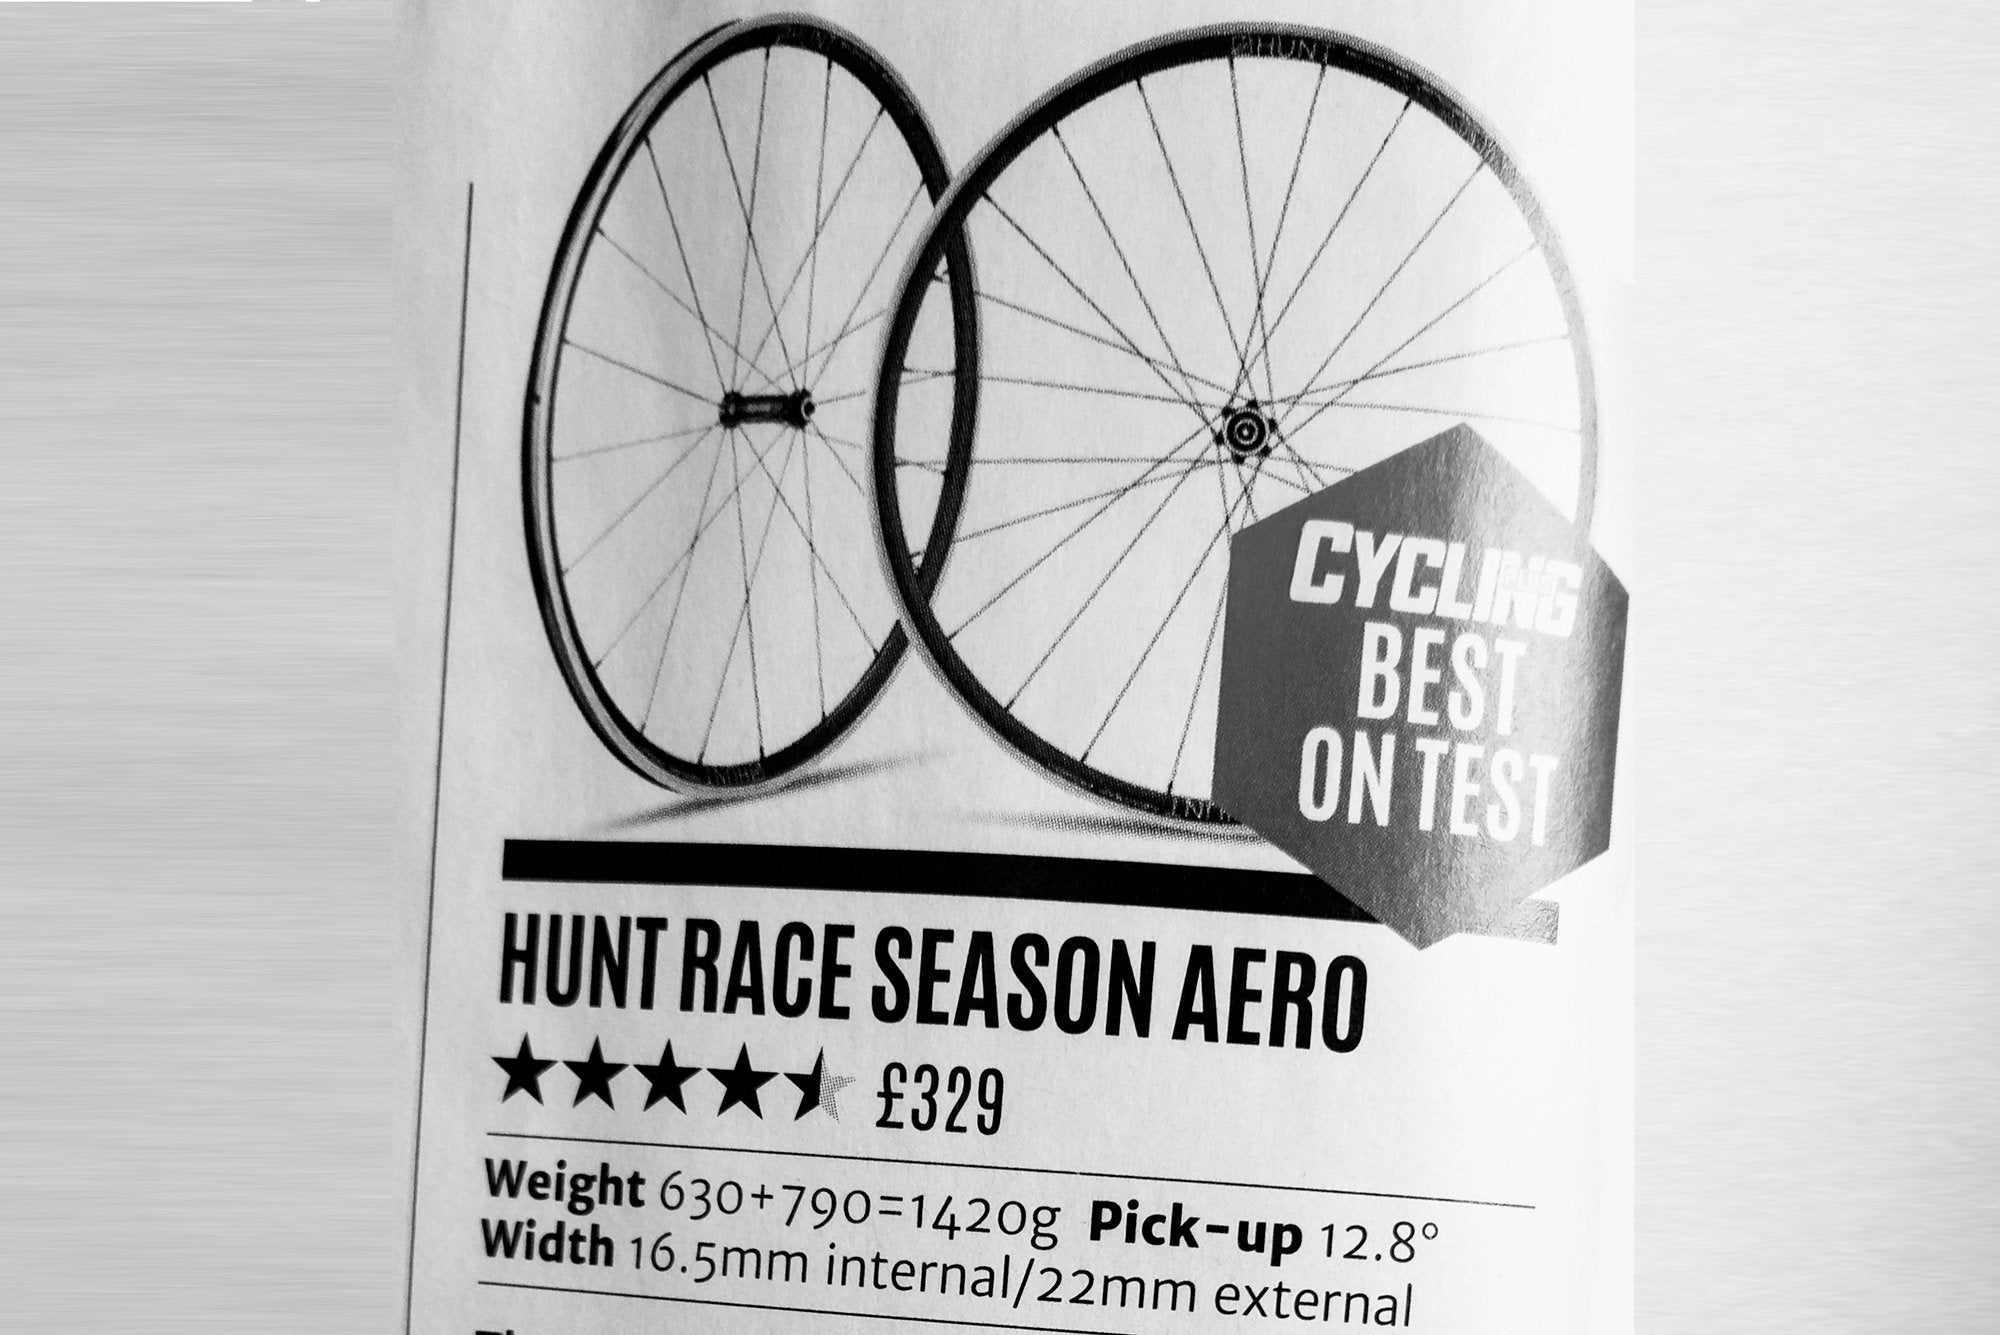 <h1>Cycling Plus Best on Test</h1>